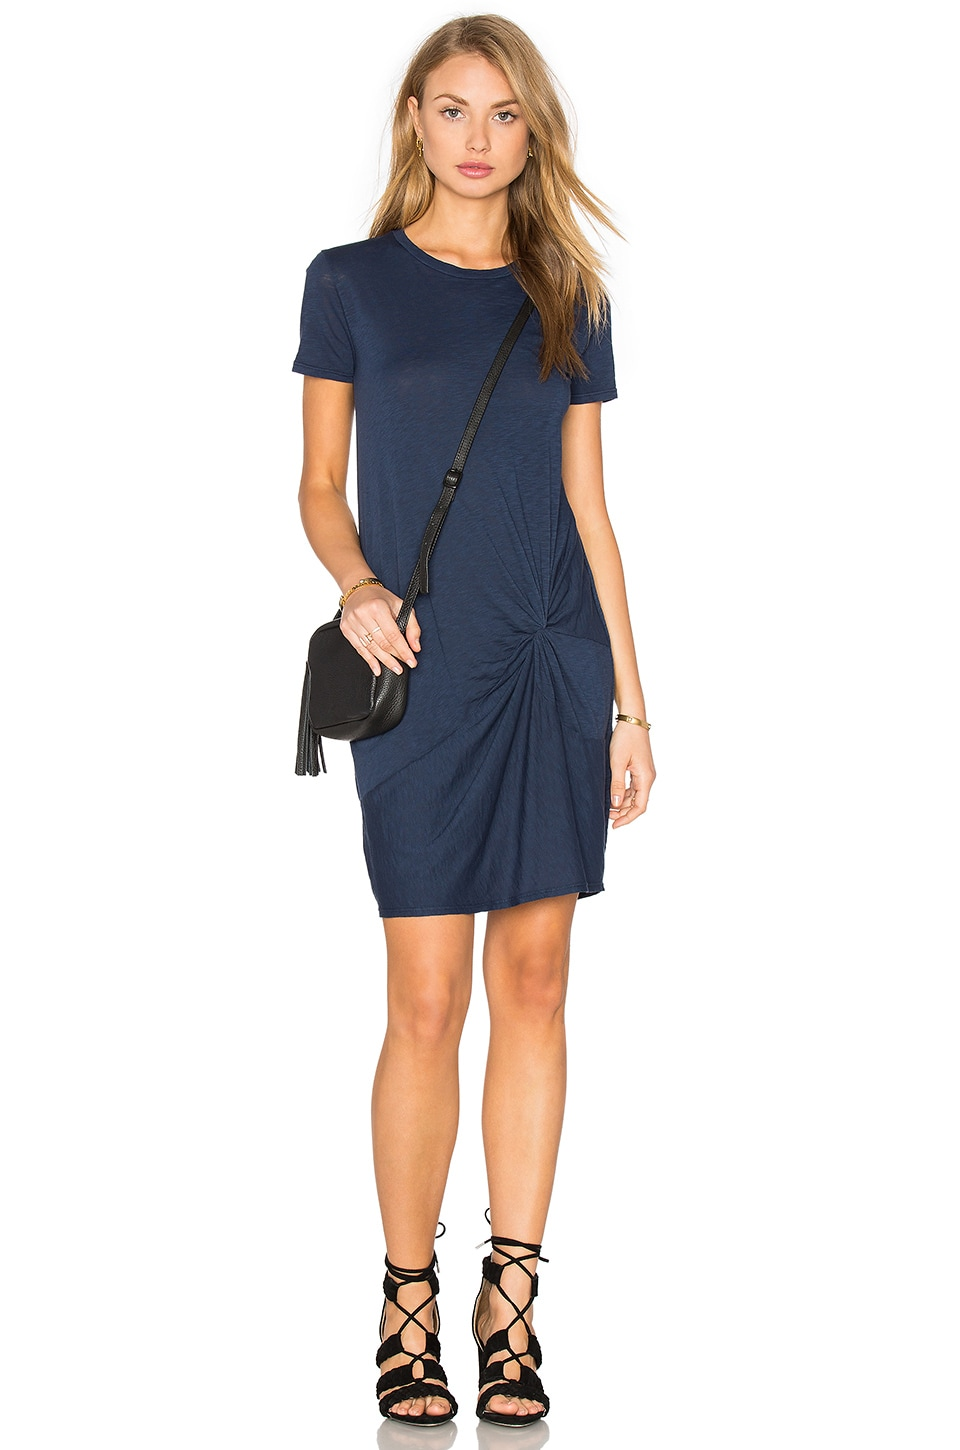 Knotted Mini Dress in Navy Stateside Sale Brand New Unisex A1y7pkEuo